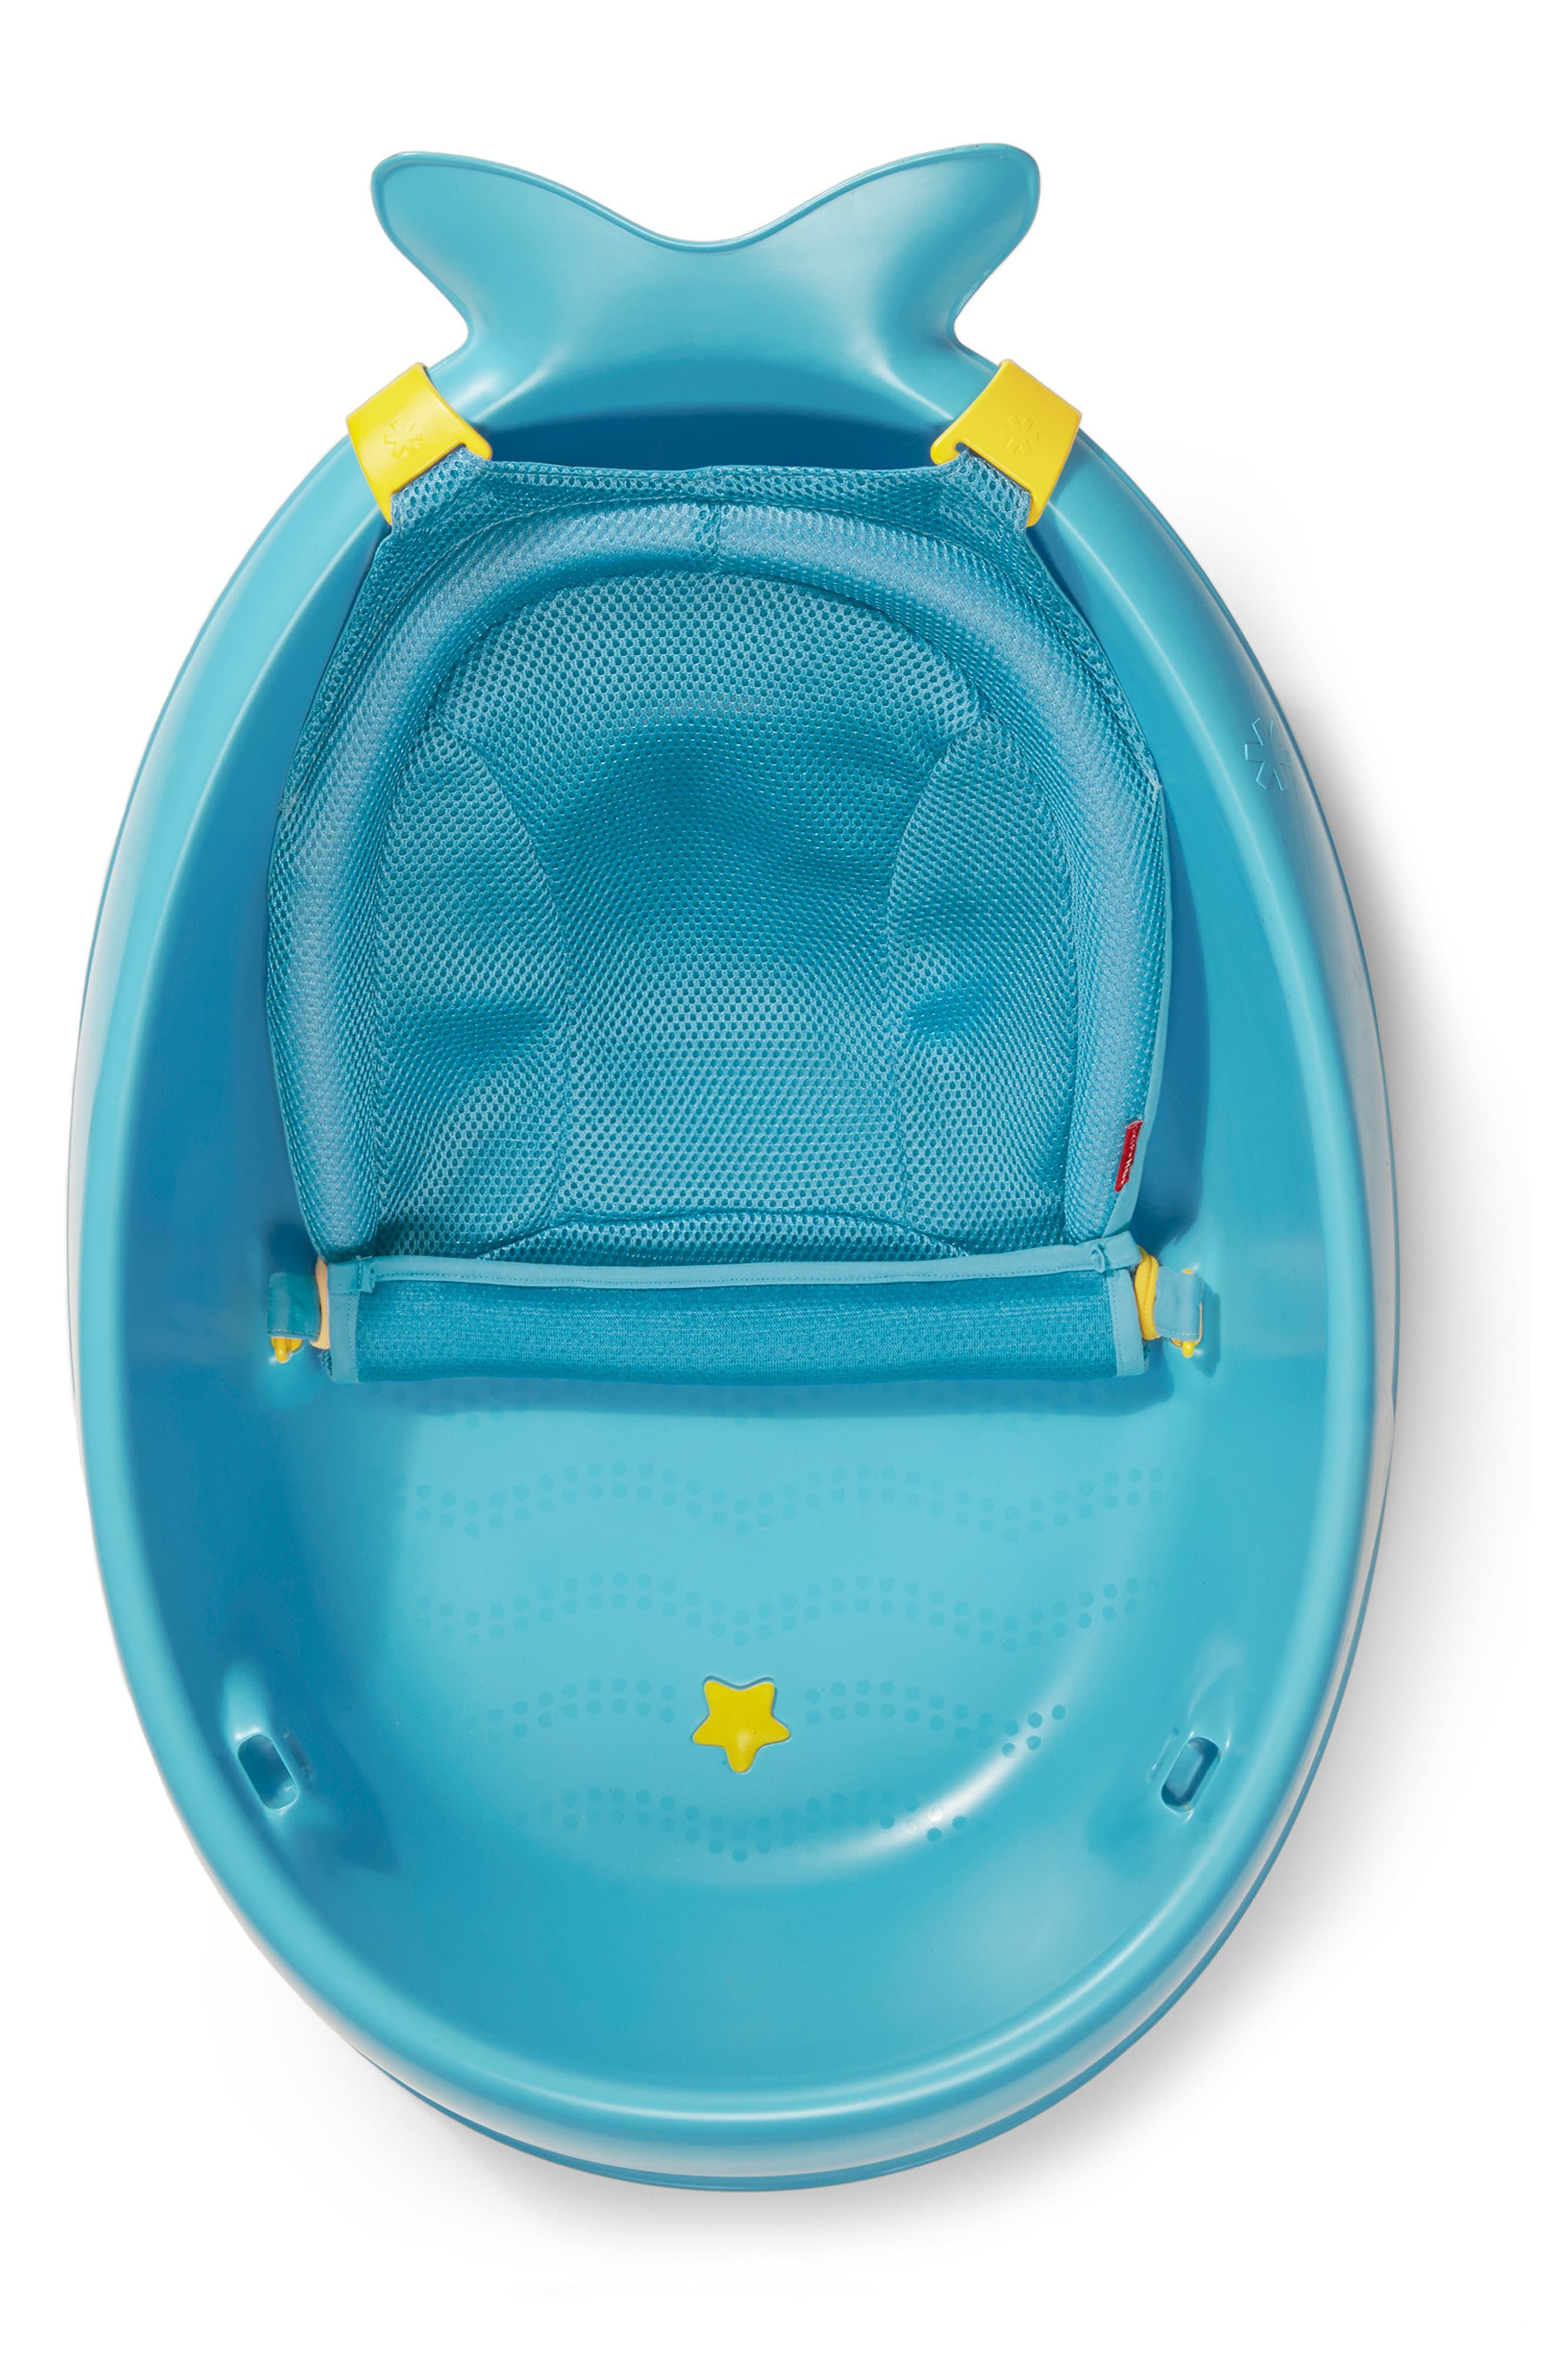 'Moby Smart Sling' Three-Stage Tub,                             Alternate thumbnail 6, color,                             BLUE